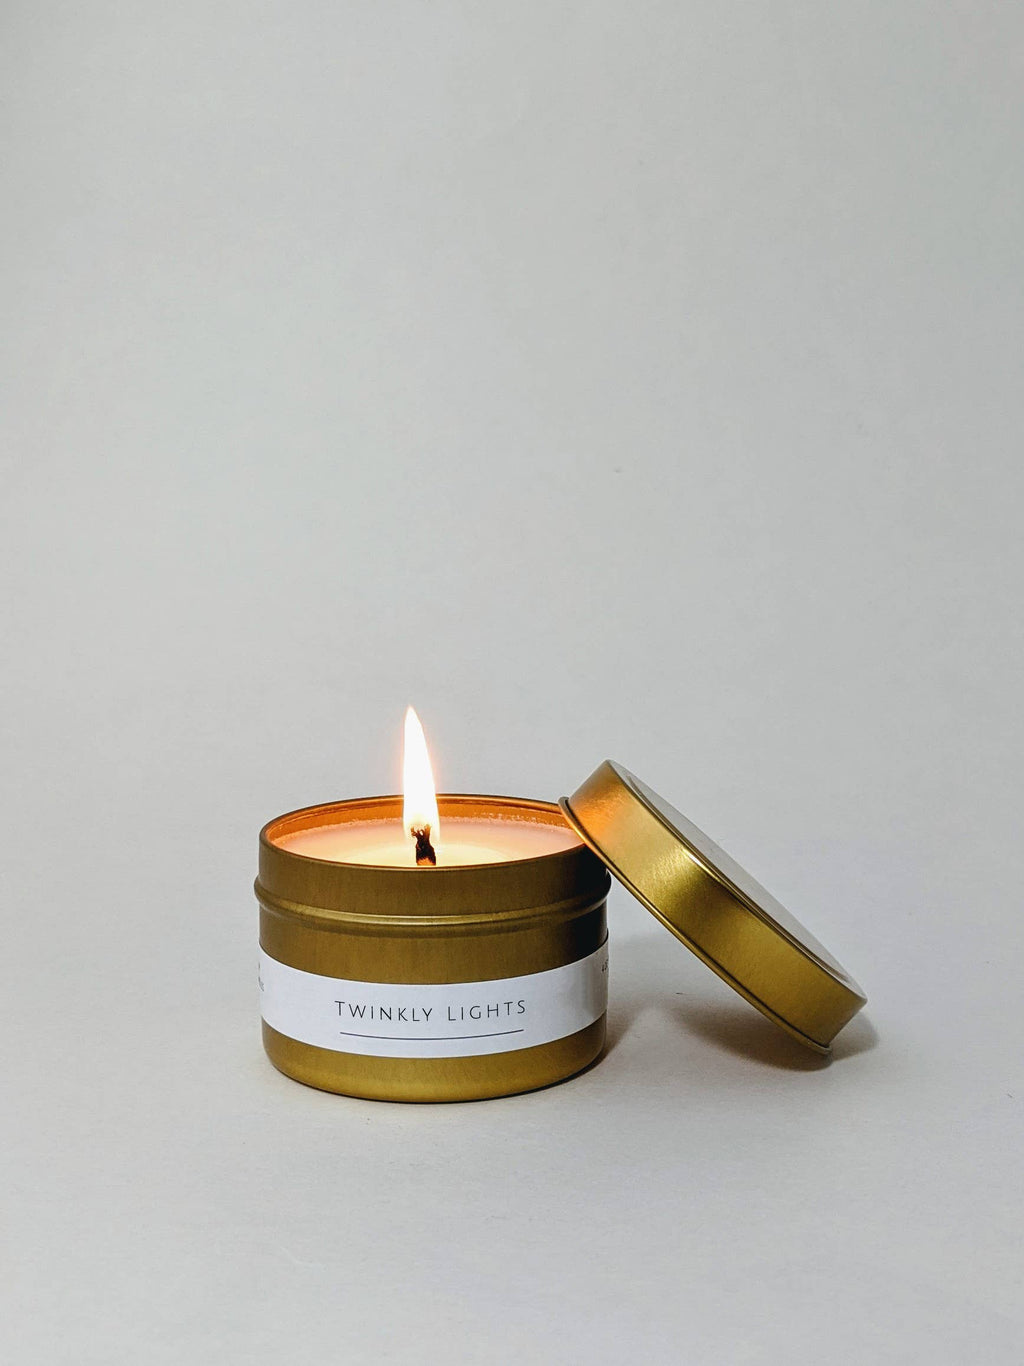 Twinkly Lights 4 oz Gold Tin Candle (Holiday)